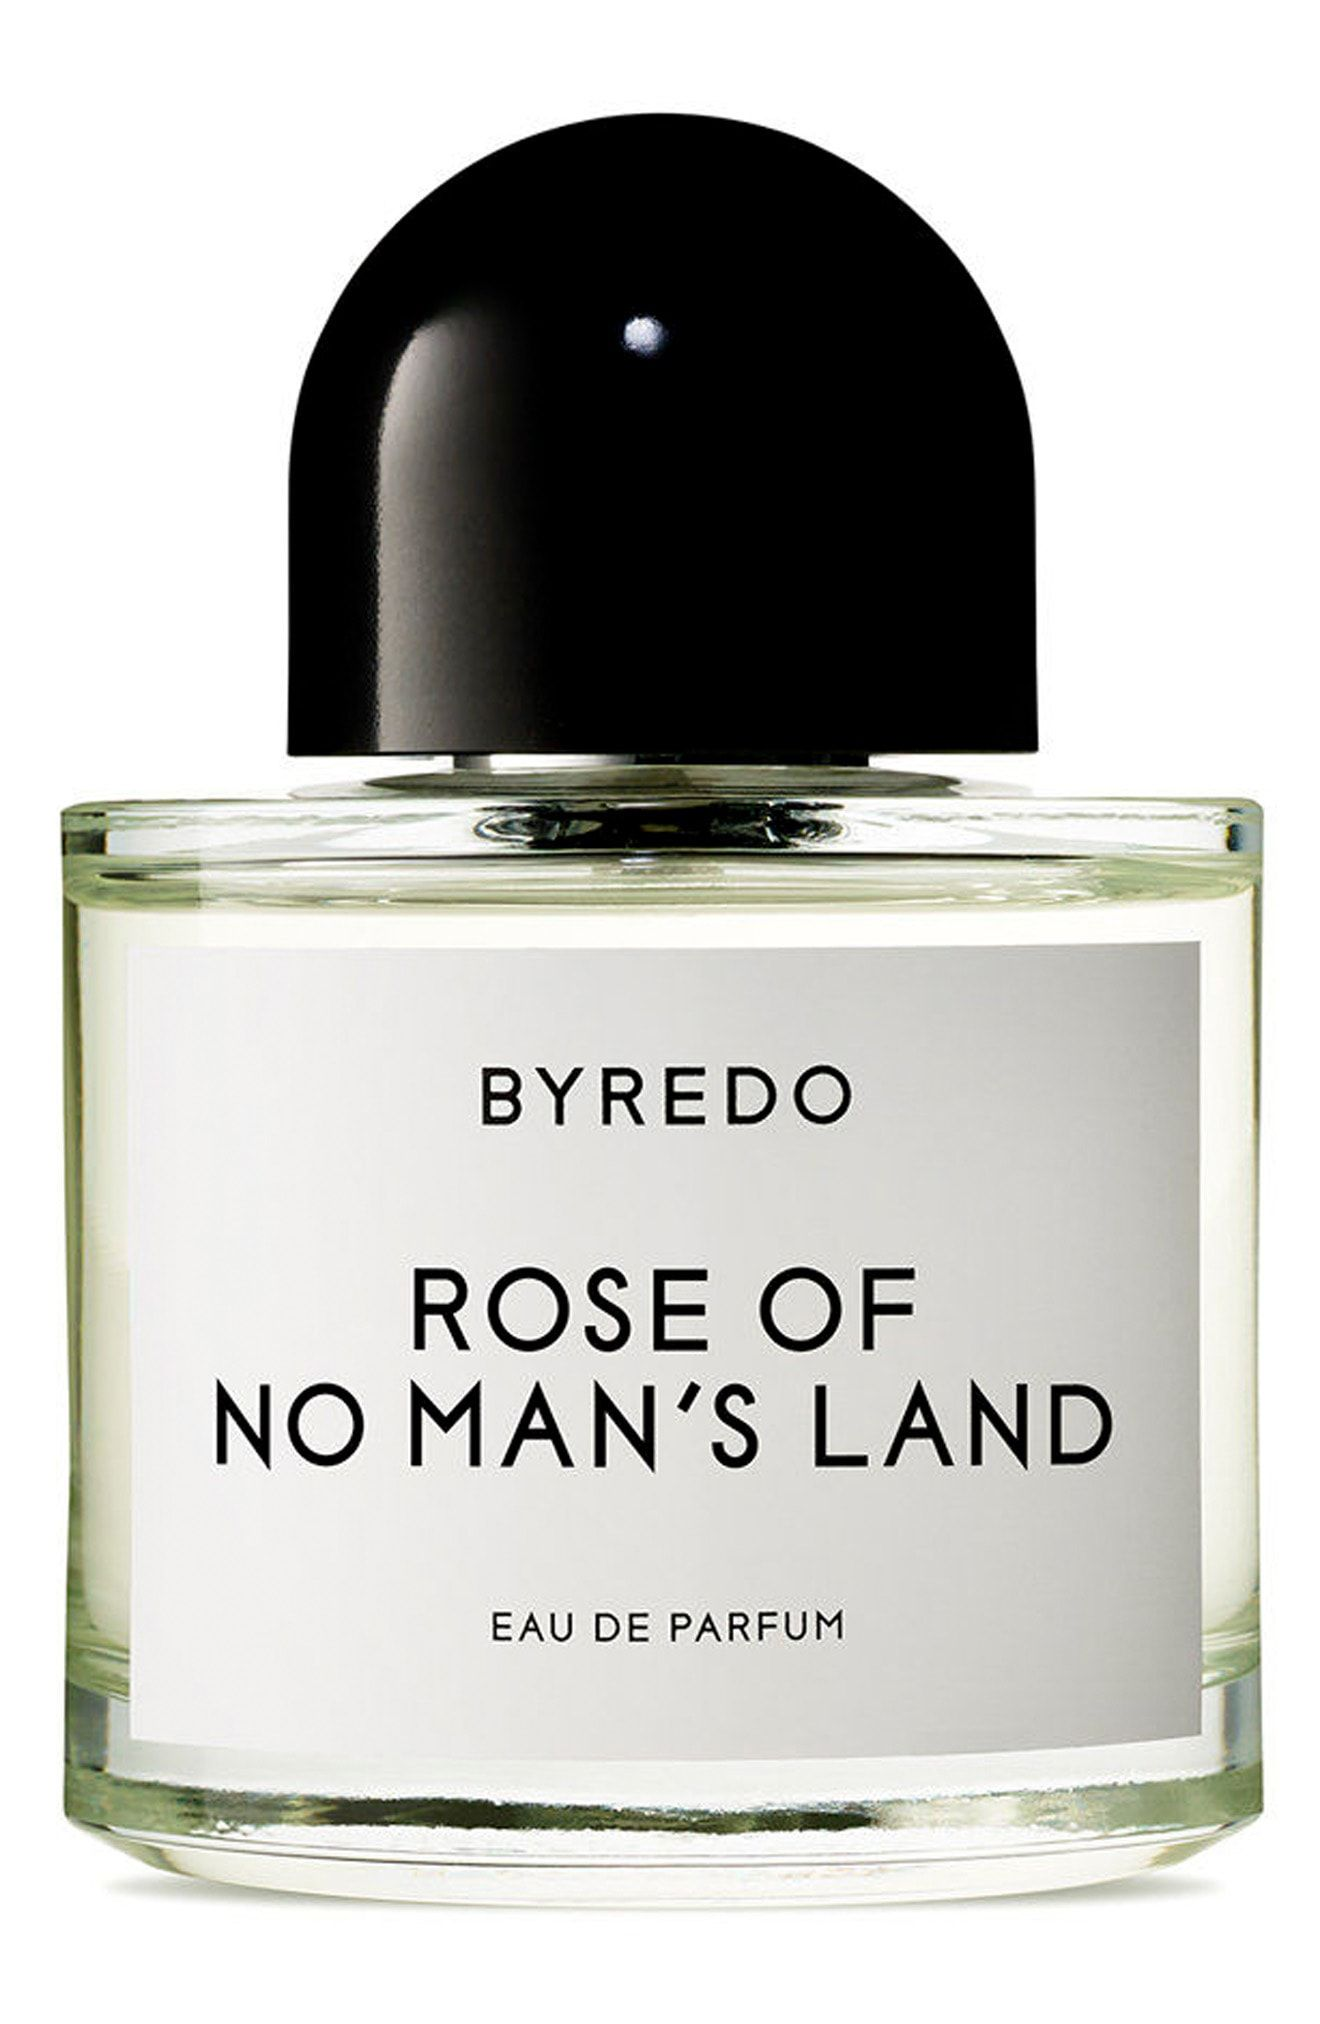 "Byredo Rose of No Man's Land nordstrom.com $165.00 SHOP NOW What they say: "" A floral fragrance that opens with notes of pink pepper and Turkish rose petals."" What we say: Roses don't have to be sweet."